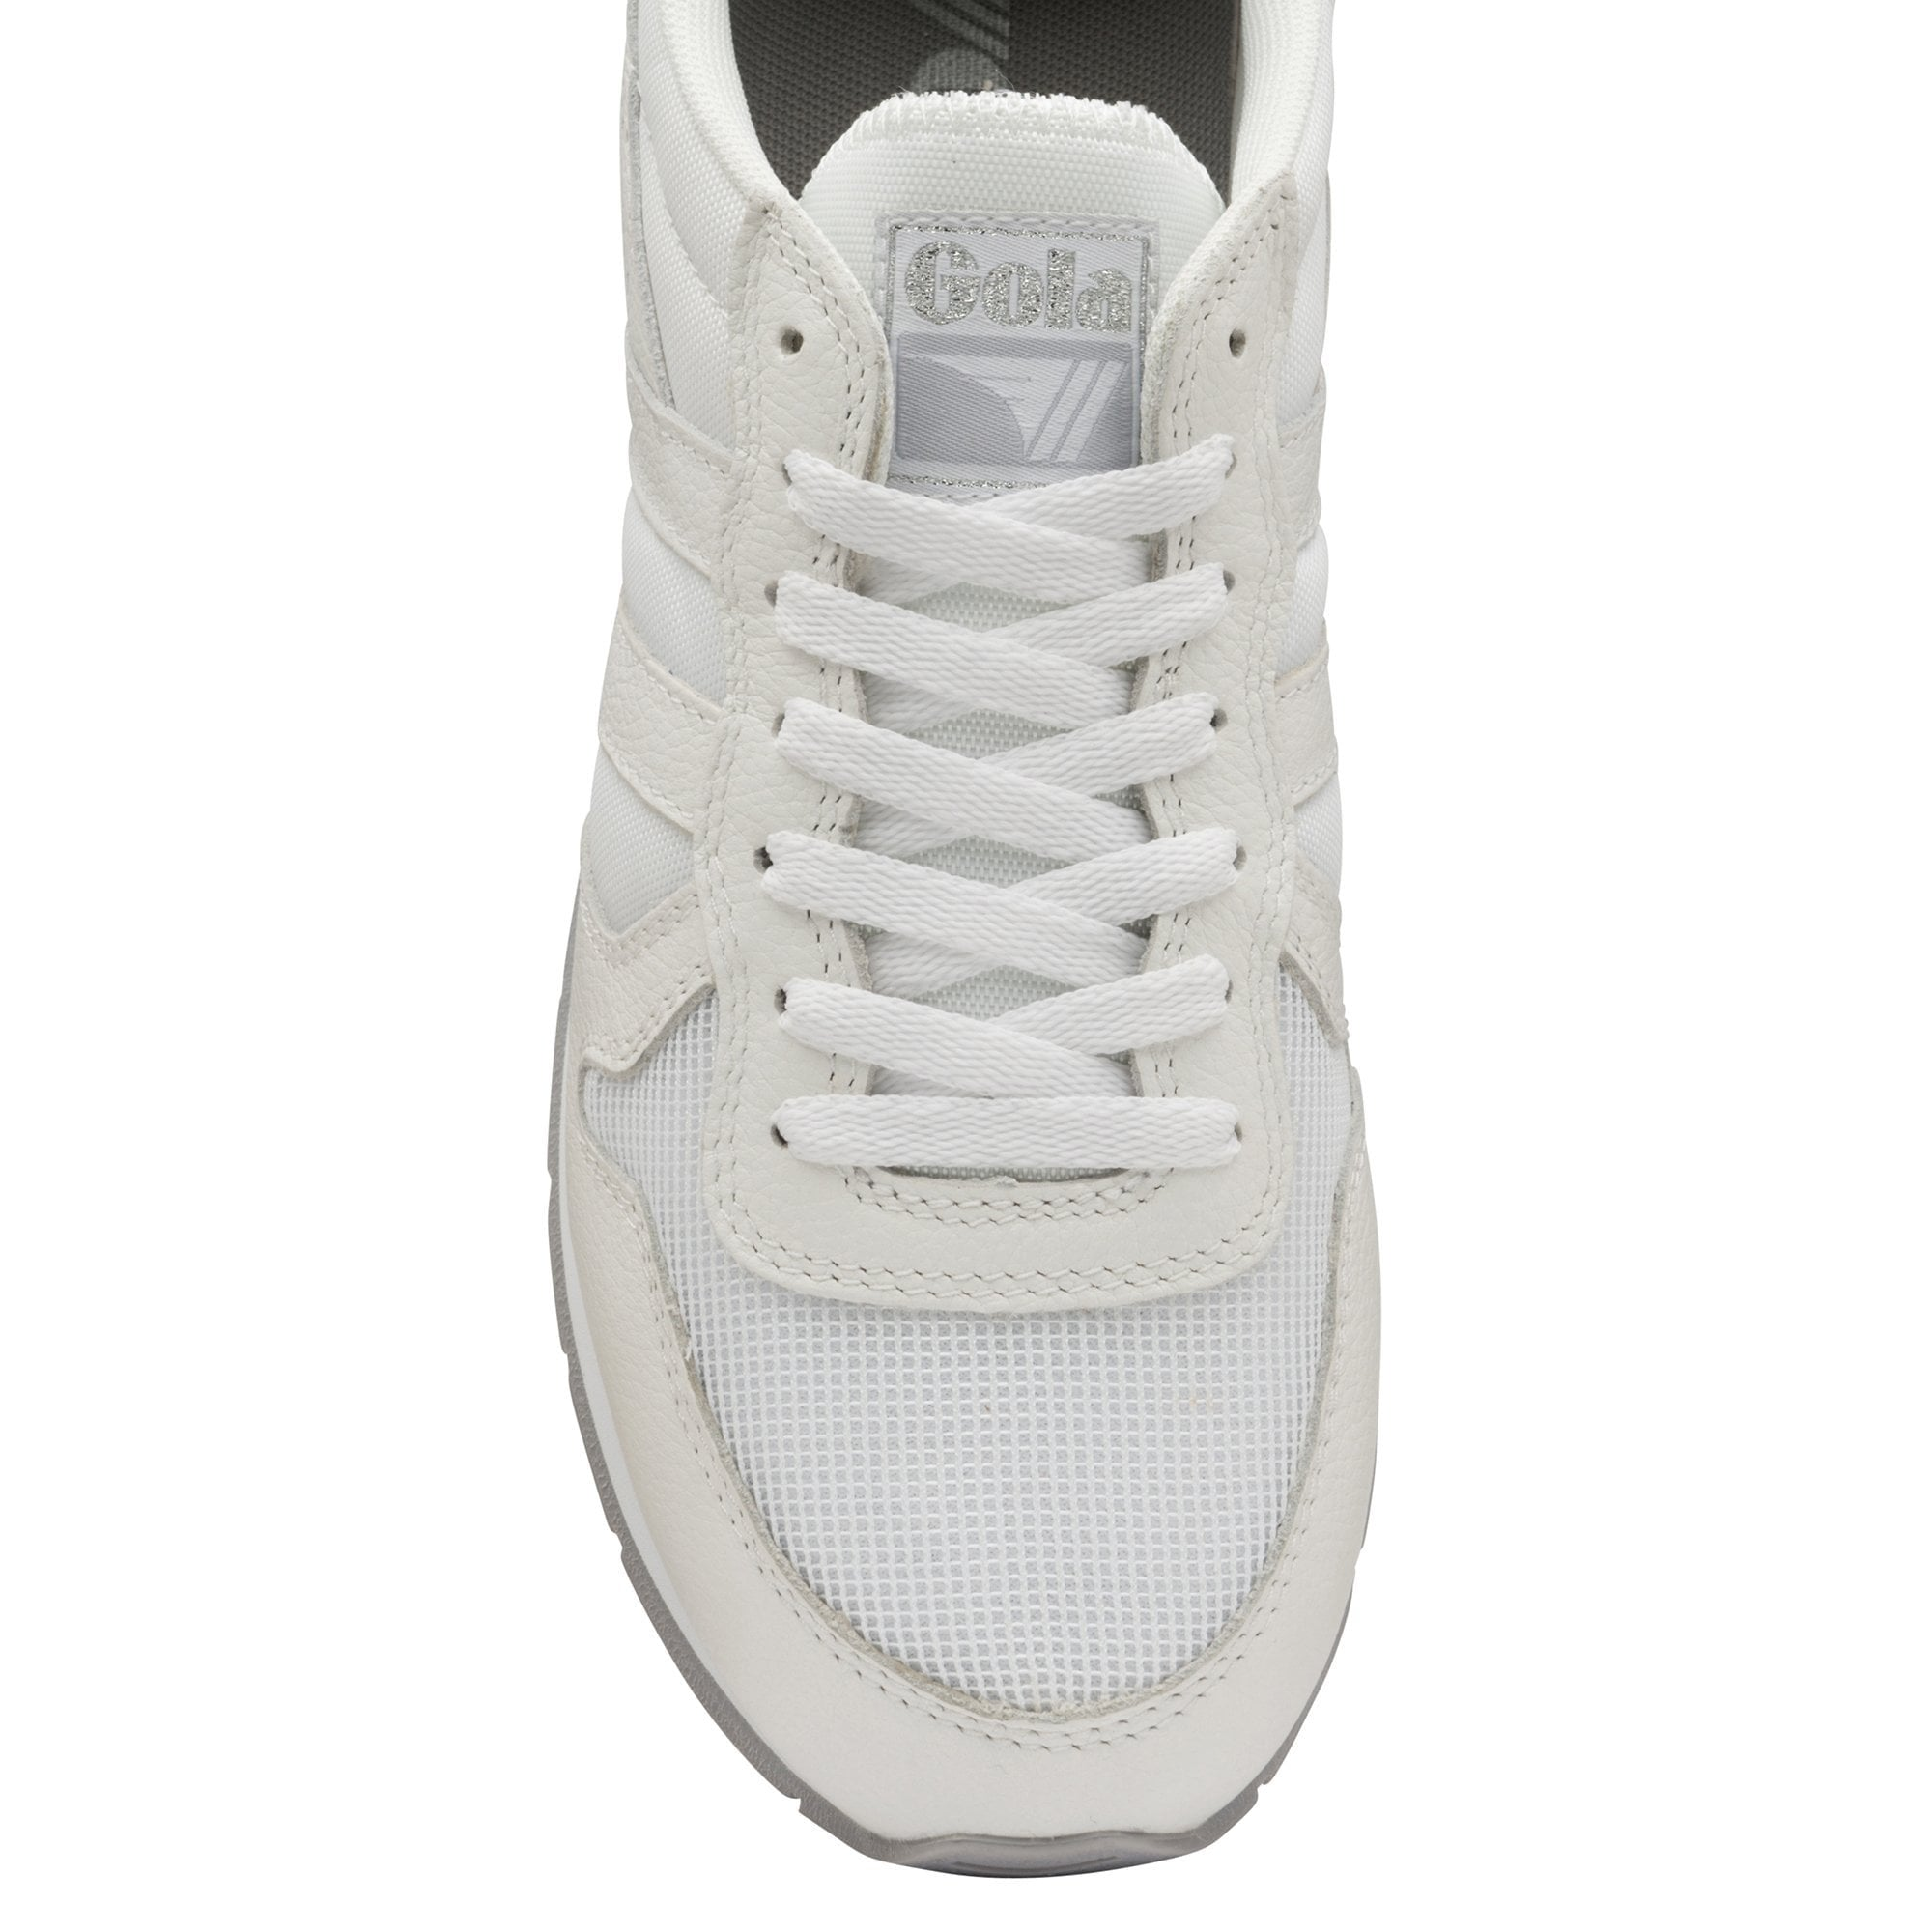 Men's Daytona Leather Trainer